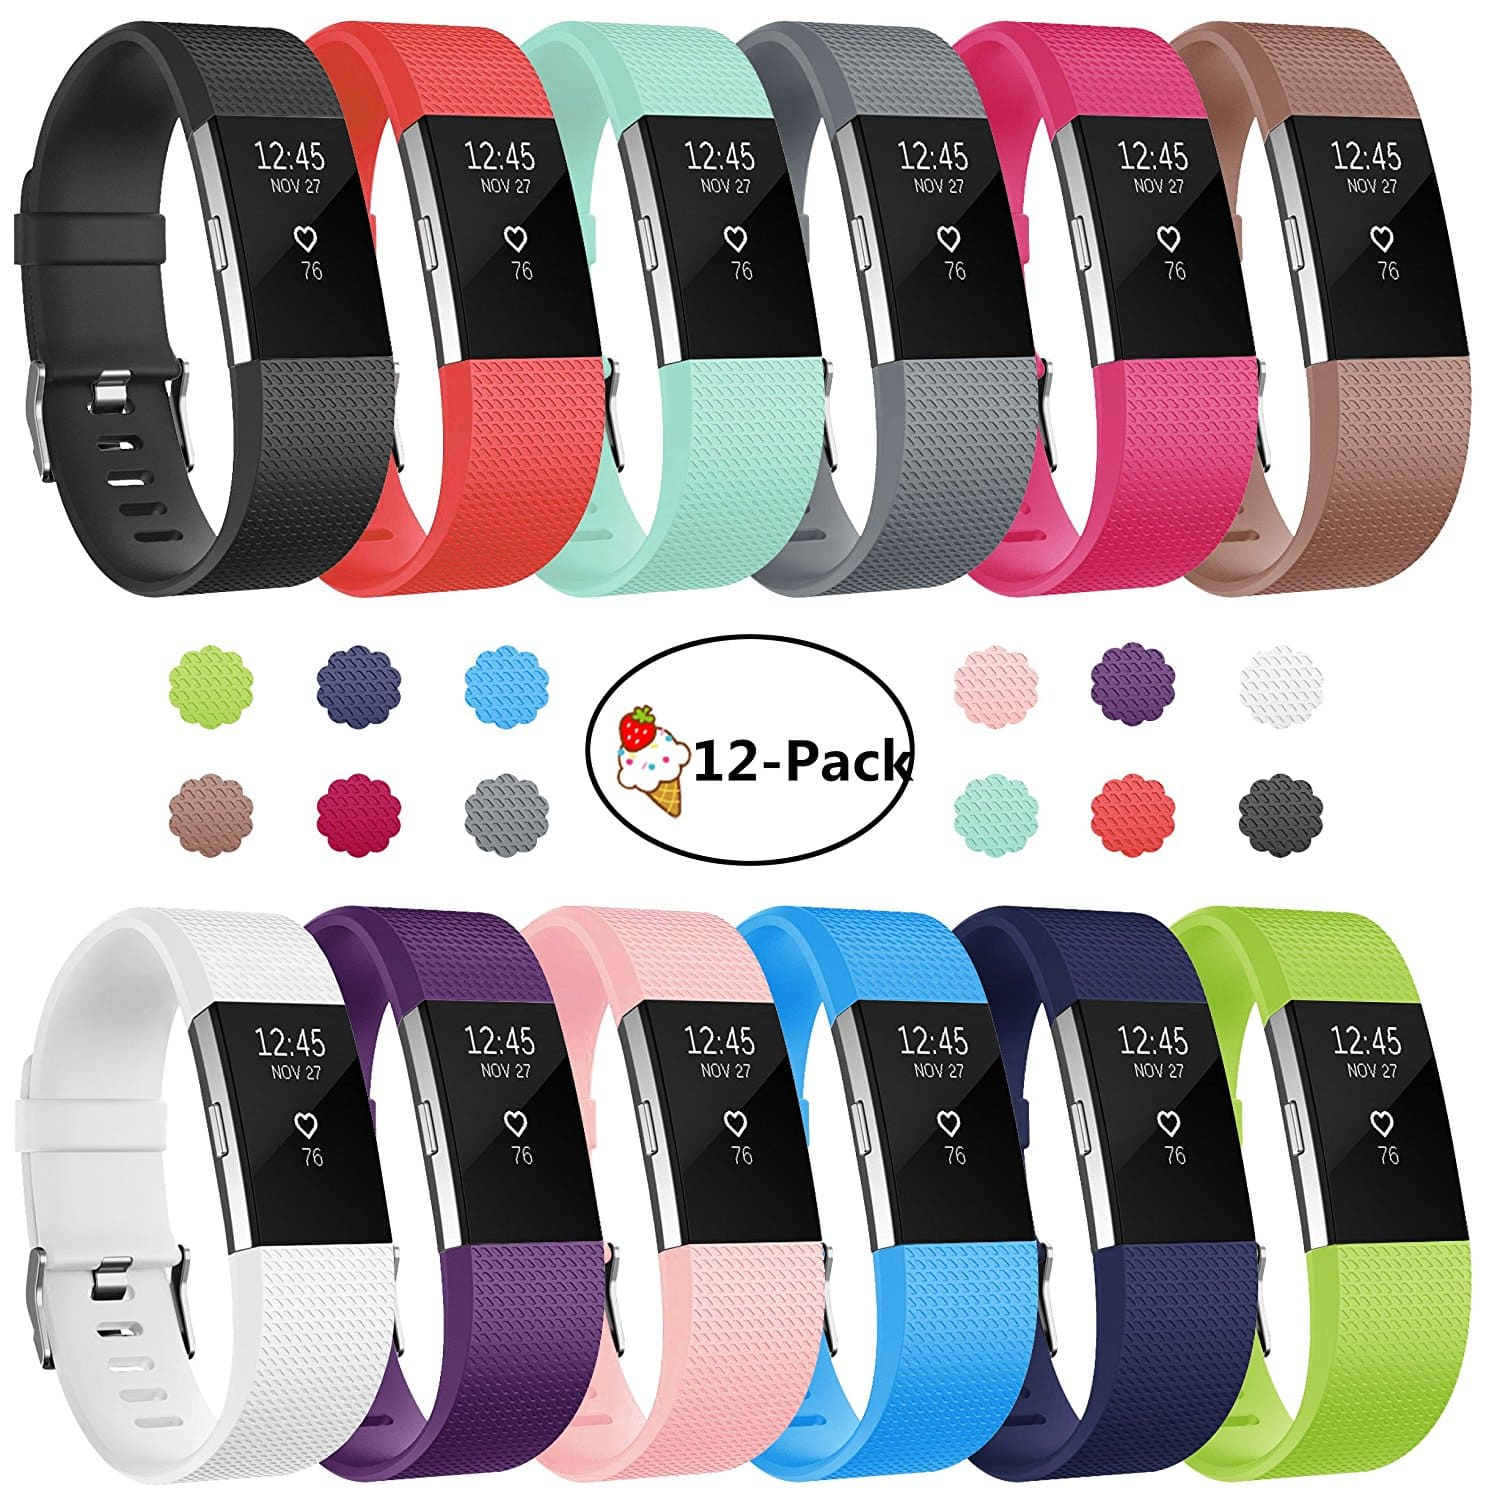 Soulen 12-Pack Soft Silicone Accessory Replacement Bands For Fitbit Charge 2 - $11.89 @ Amazon